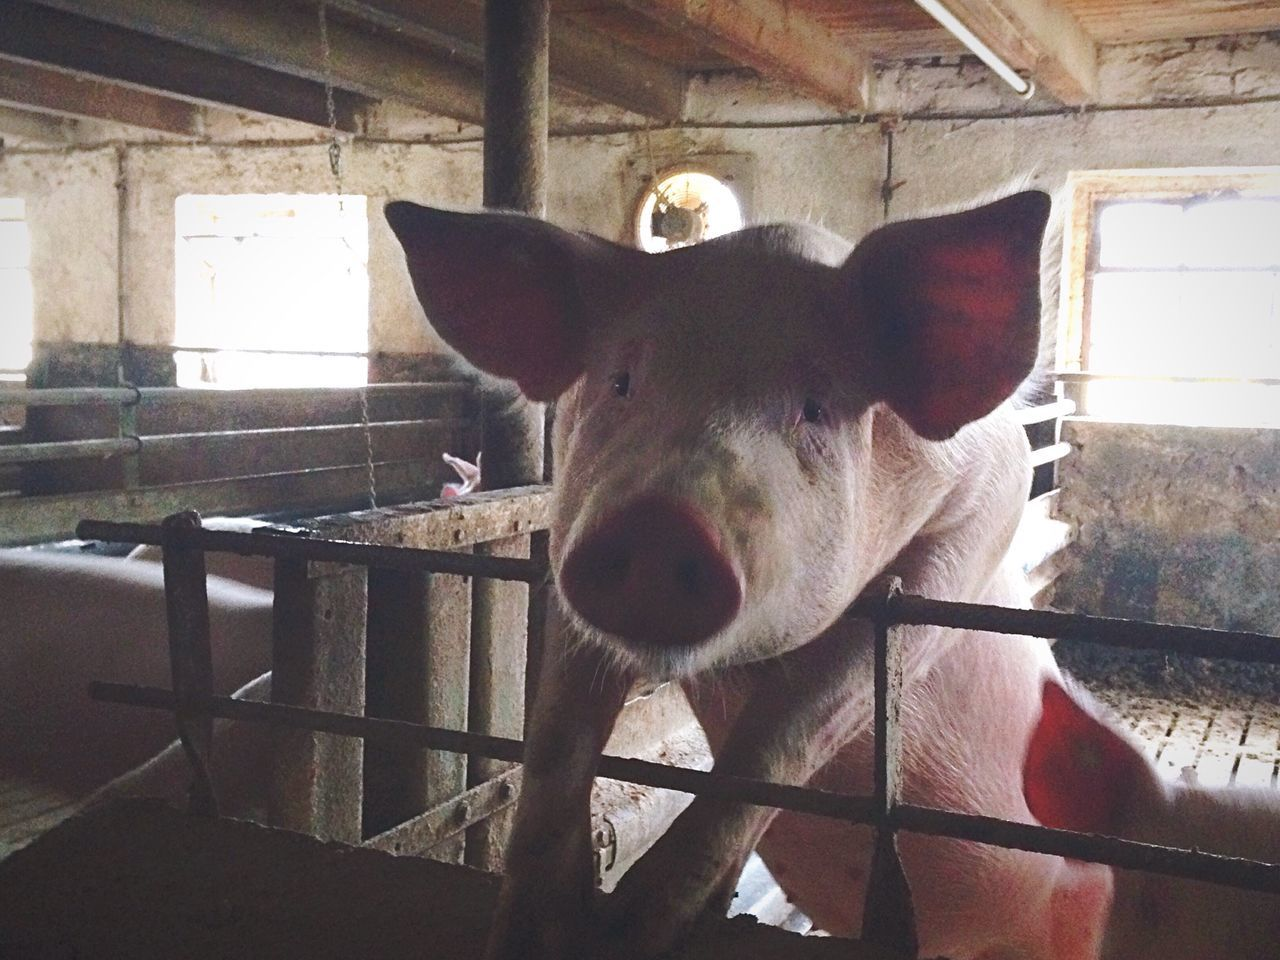 Portrait Of Pig In Barn